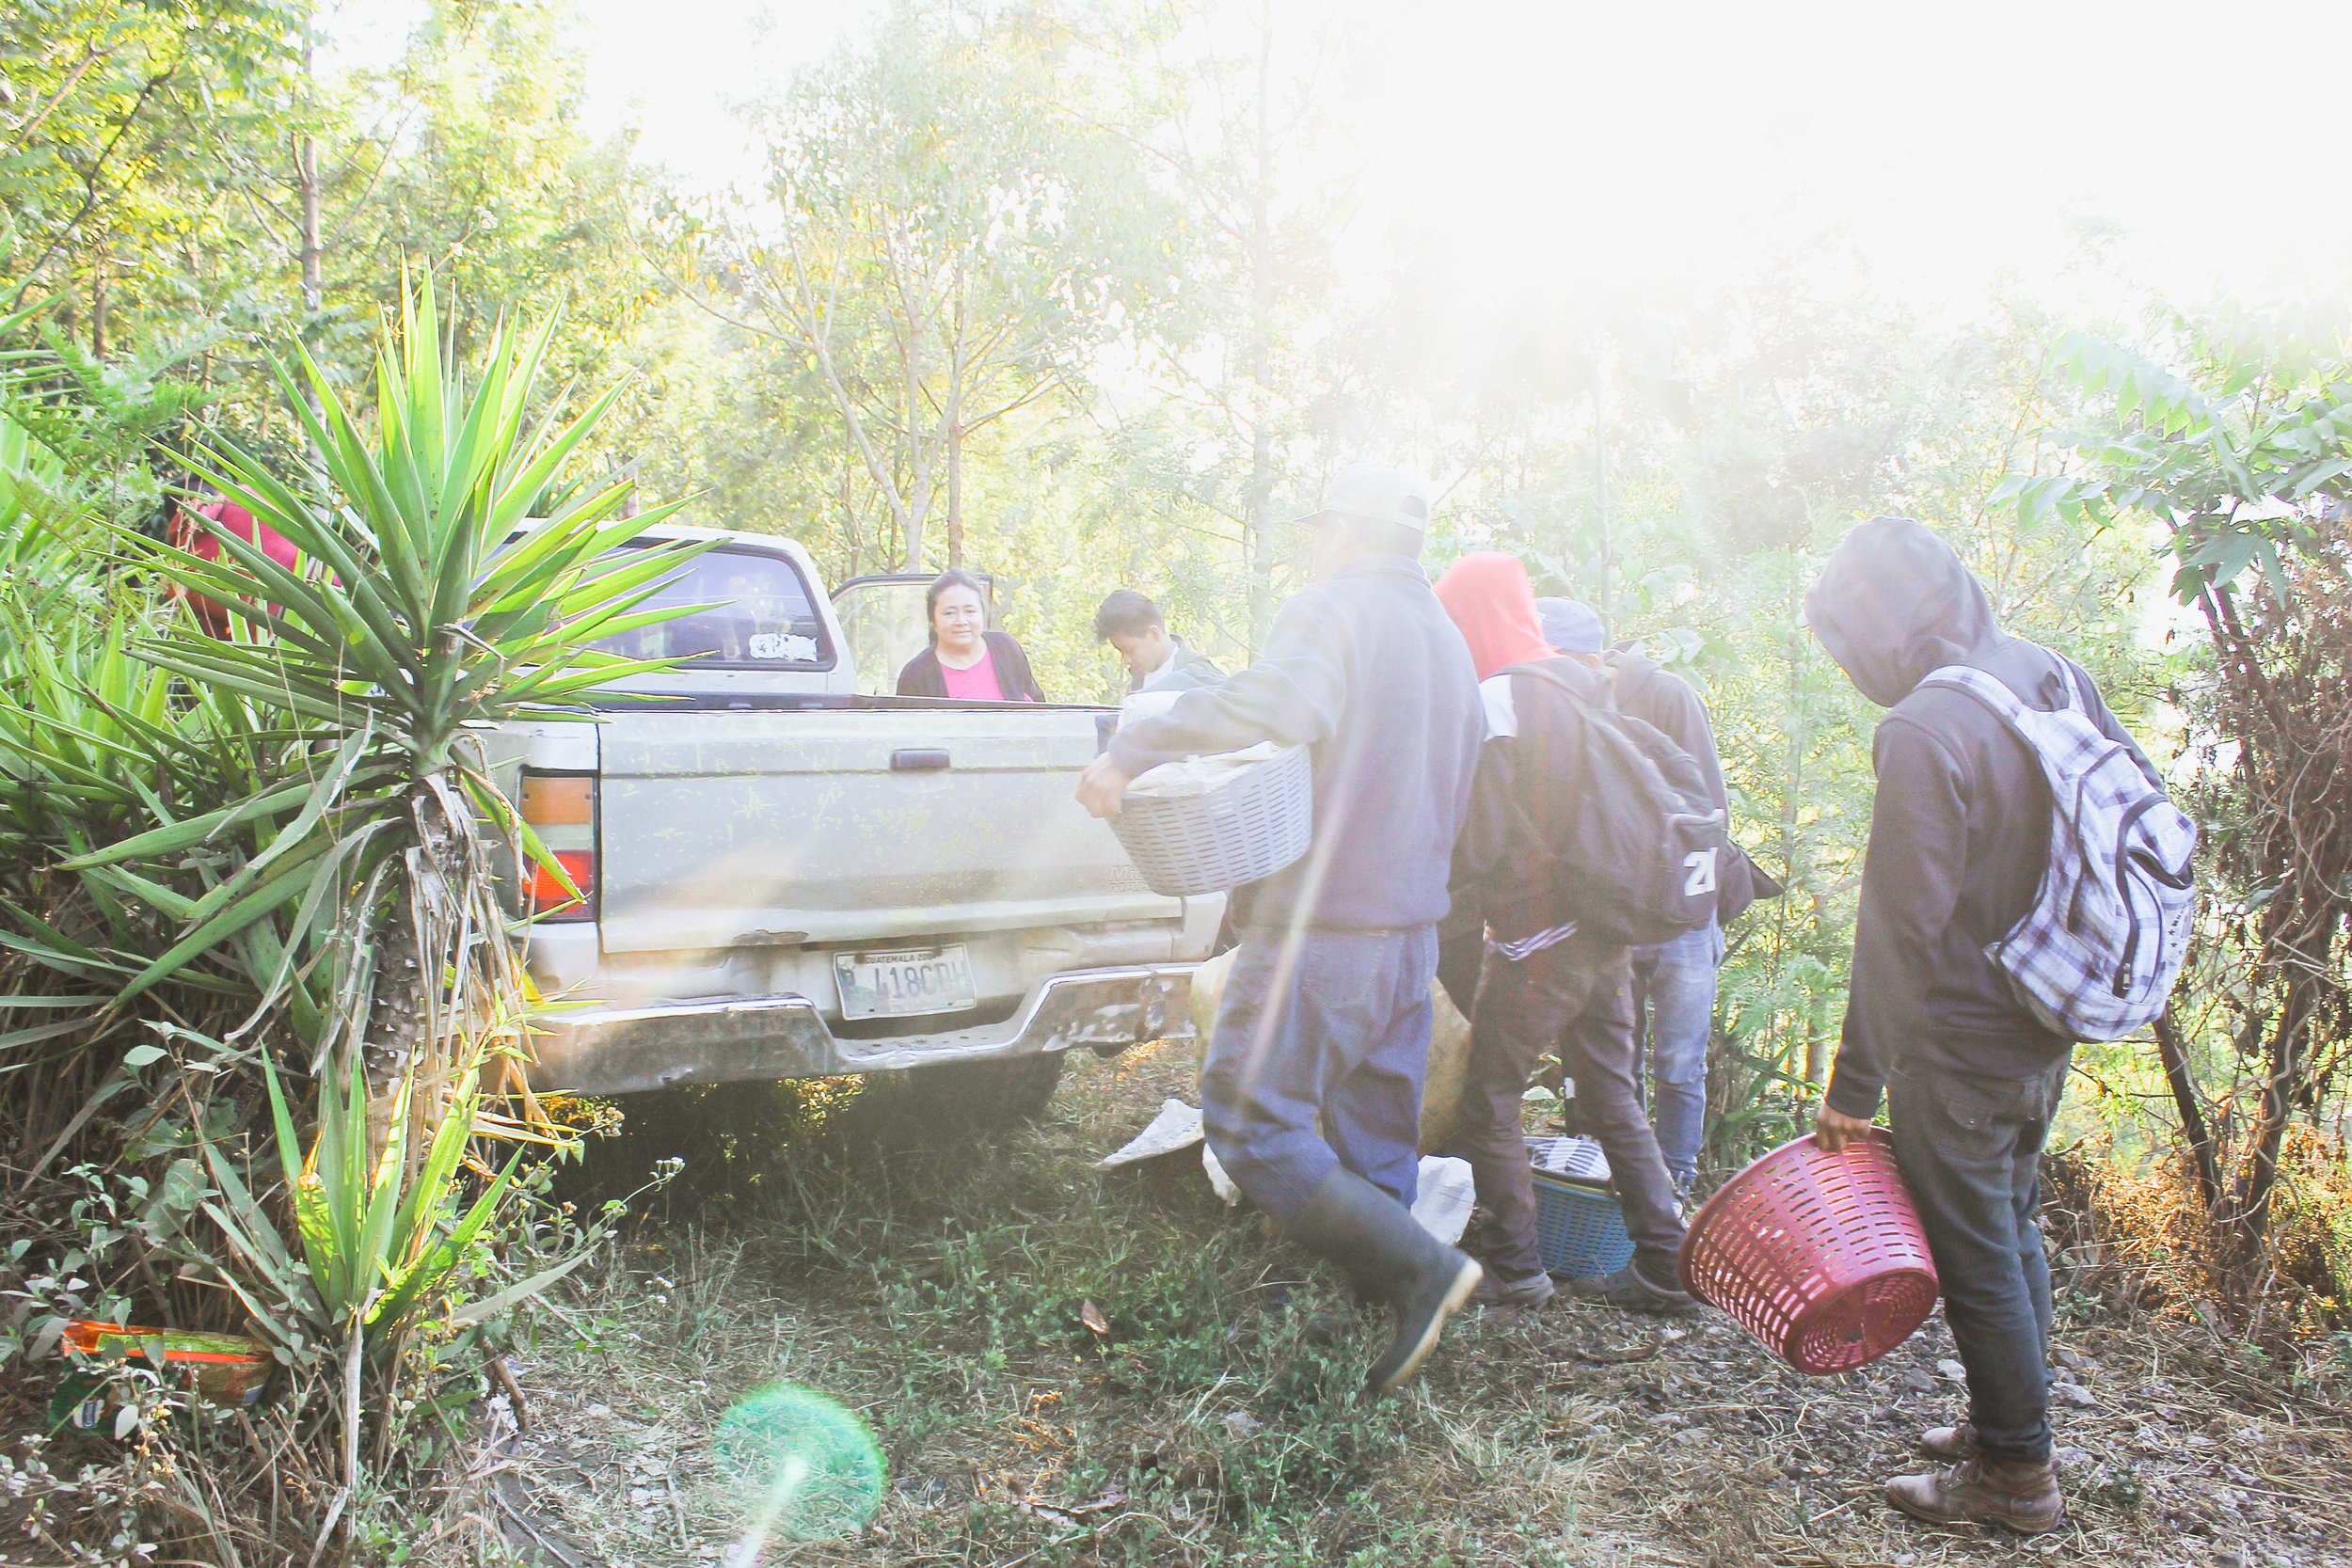 WORKERS PREPARE FOR A DAY OF WORK IN THE COFFEE FIELD ON PORÓN'S COFFEE FARM LOCATED IN LA VUELTA DE LOS PINOS ON JAN. 18. THEY STARTED THEIR CLIMB UP THE MOUNTAIN AT 7 A.M.